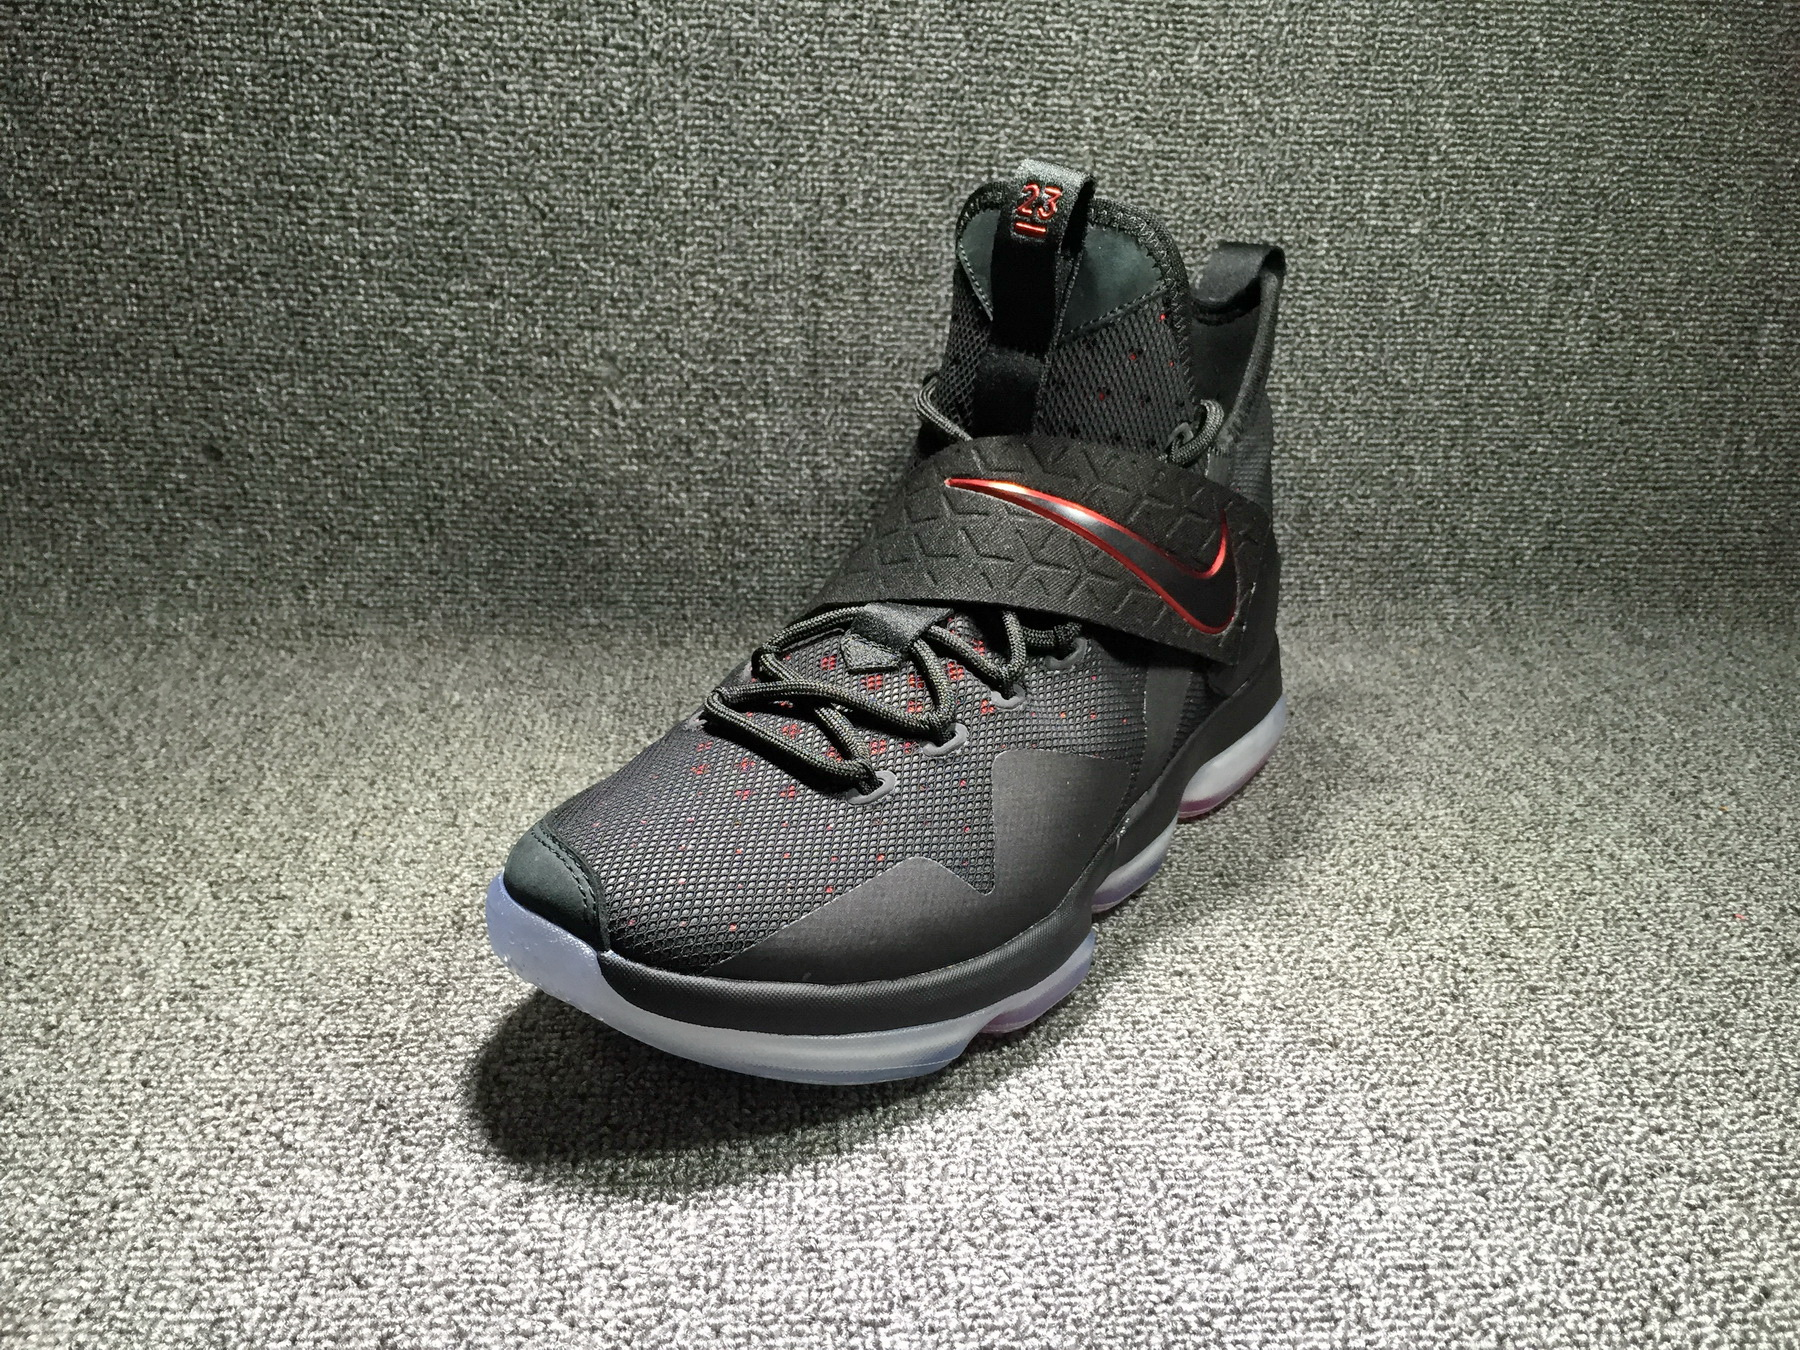 brand new 077d7 fd518 Nike LeBron 14  Bred  Black And Black-University Red Outlet